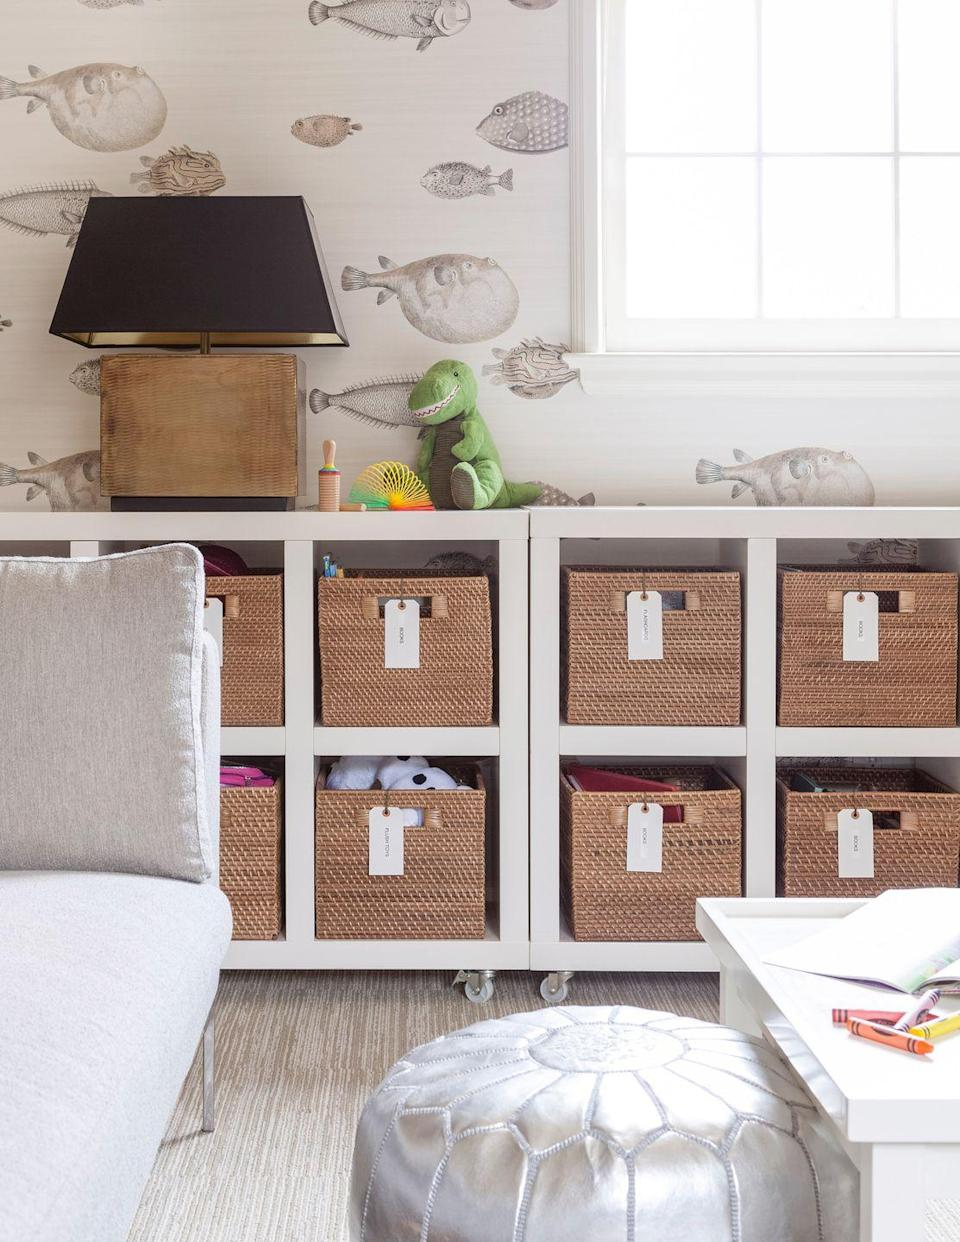 """<p>Help your teen stay organized with bins and baskets complete with labels. This will help keep the room clean and stylish. We're also loving the mix of whimsy and sophistication in this teenager's bedroom designed by <a href=""""https://www.jeanliudesign.com/"""" rel=""""nofollow noopener"""" target=""""_blank"""" data-ylk=""""slk:Jean Liu"""" class=""""link rapid-noclick-resp"""">Jean Liu</a>, namely, the blowfish wallpaper and metallic accents. </p>"""